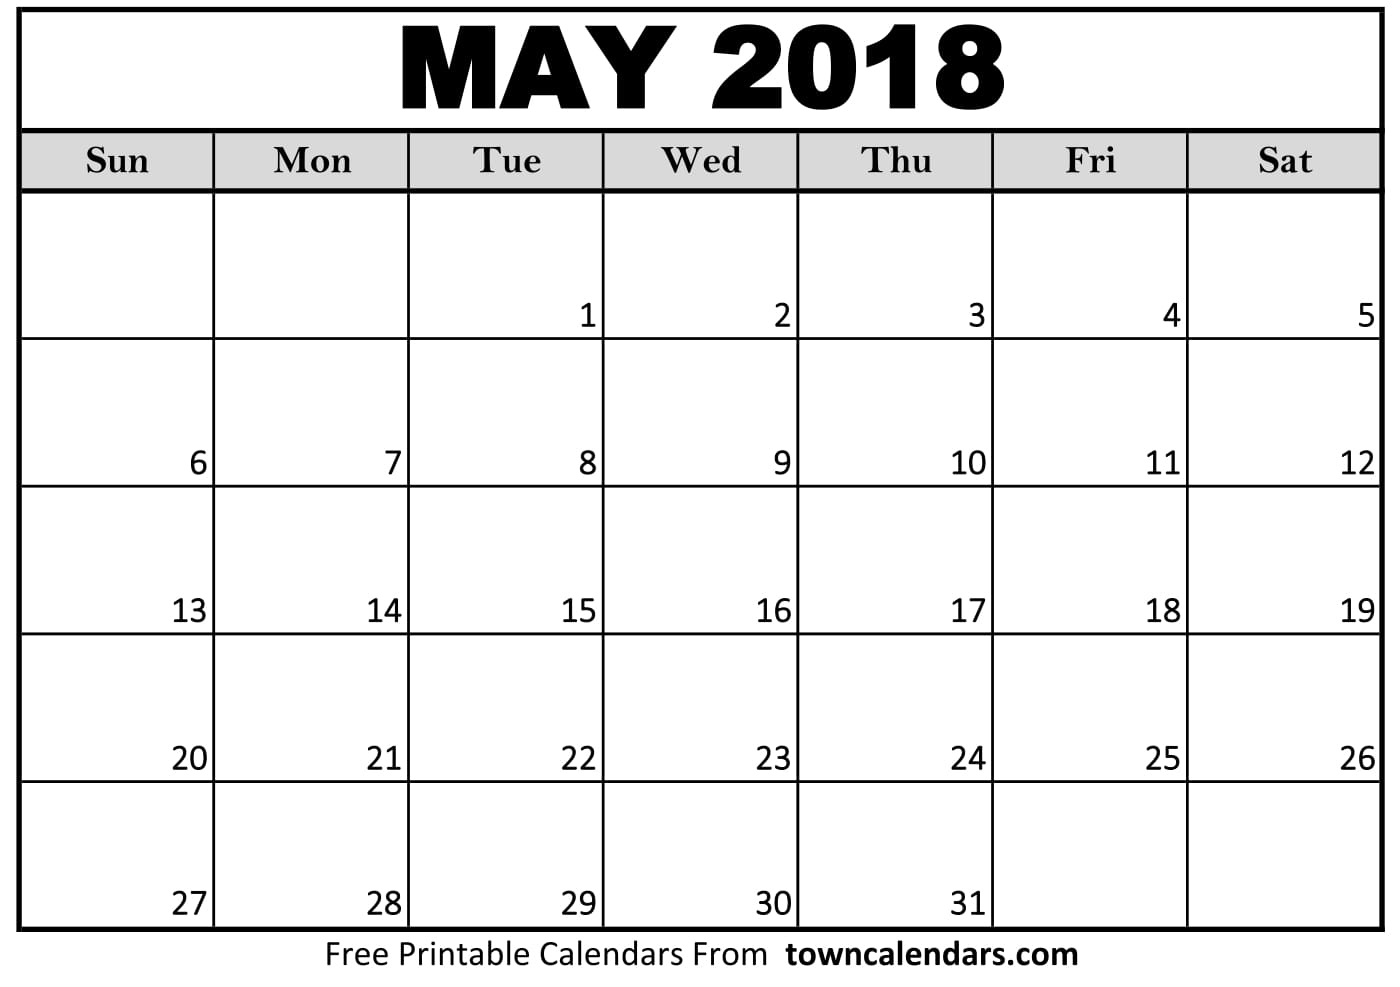 Printable May 2018 Calendar Template